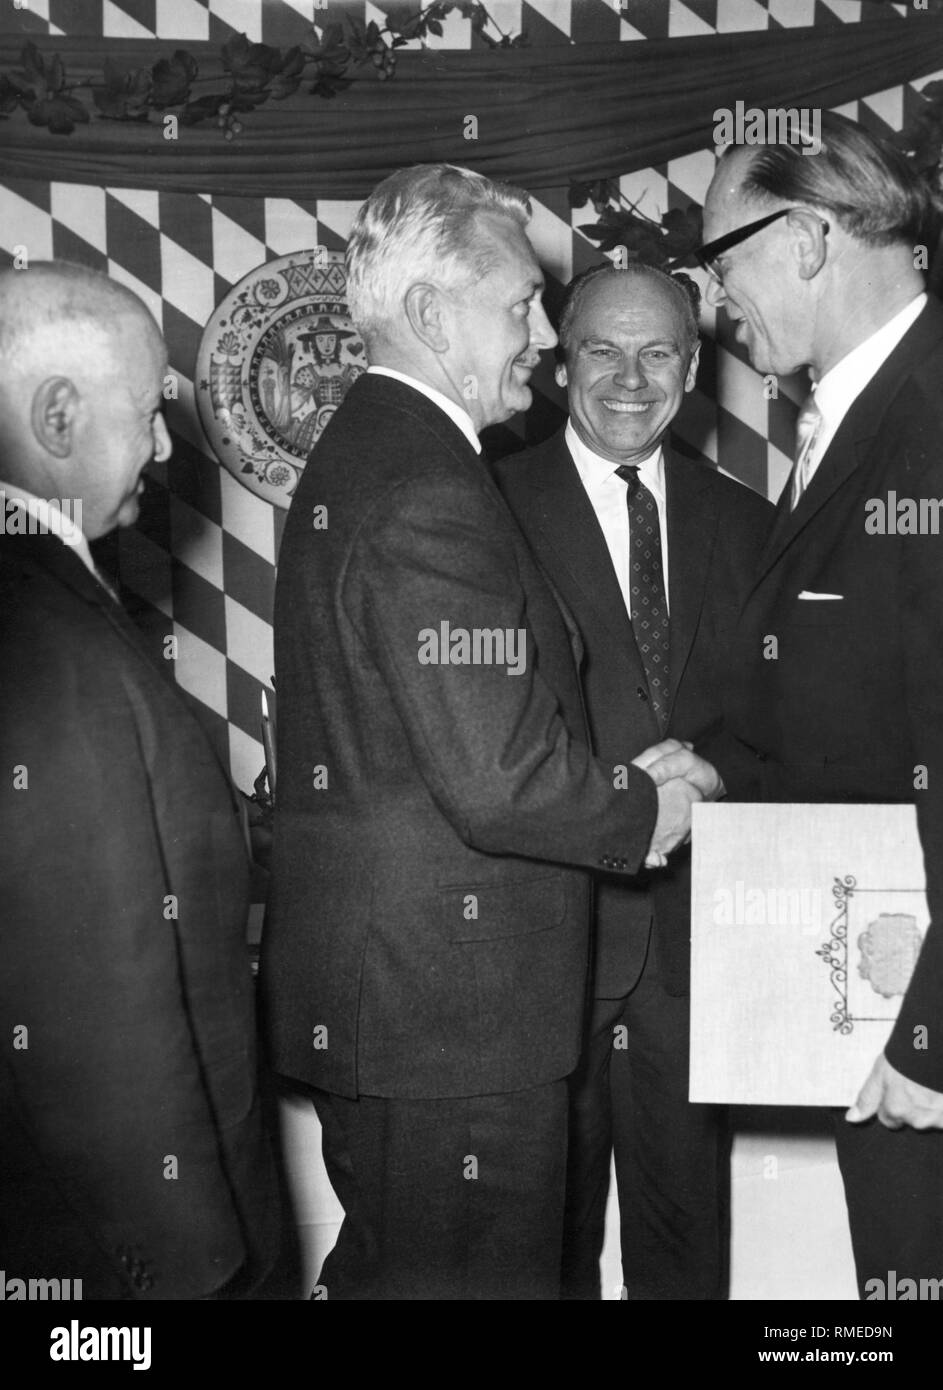 Albert Bayerle (right), third mayor in Munich (from 1960-1972), at the Fashion Week. - Stock Image